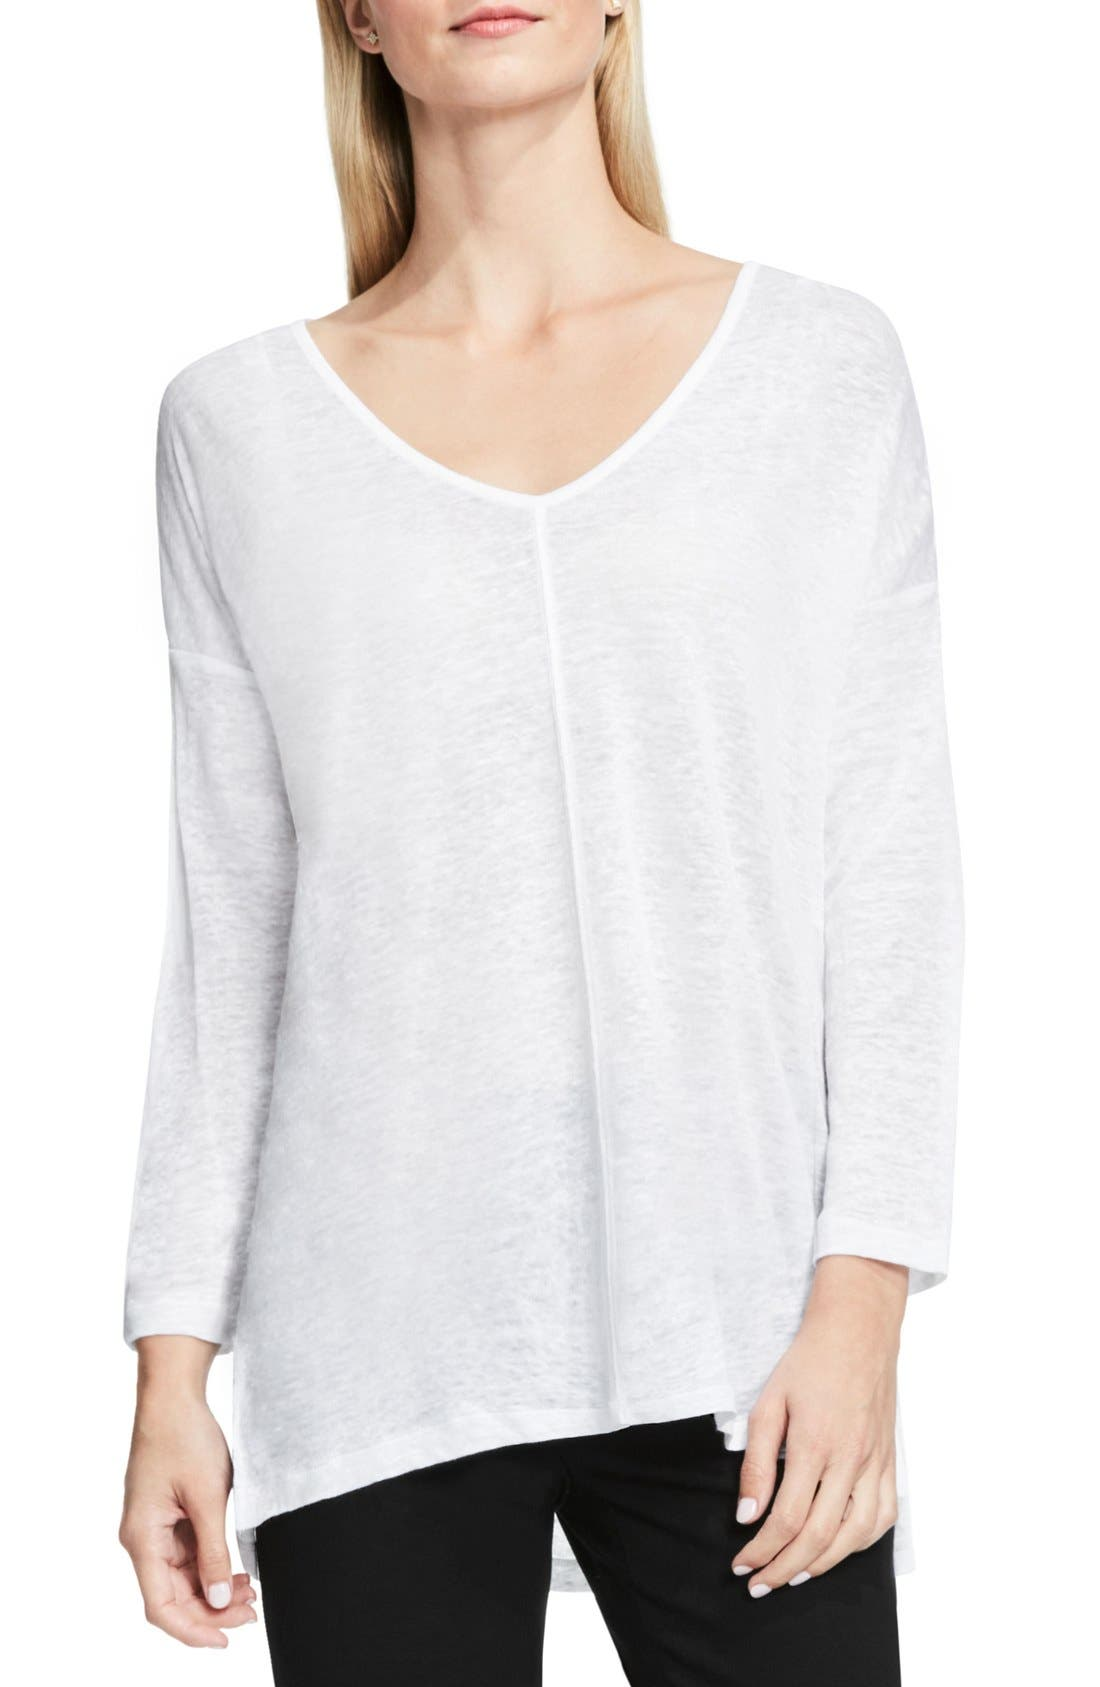 Alternate Image 1 Selected - Two by Vince Camuto Seam Detail Linen Tee